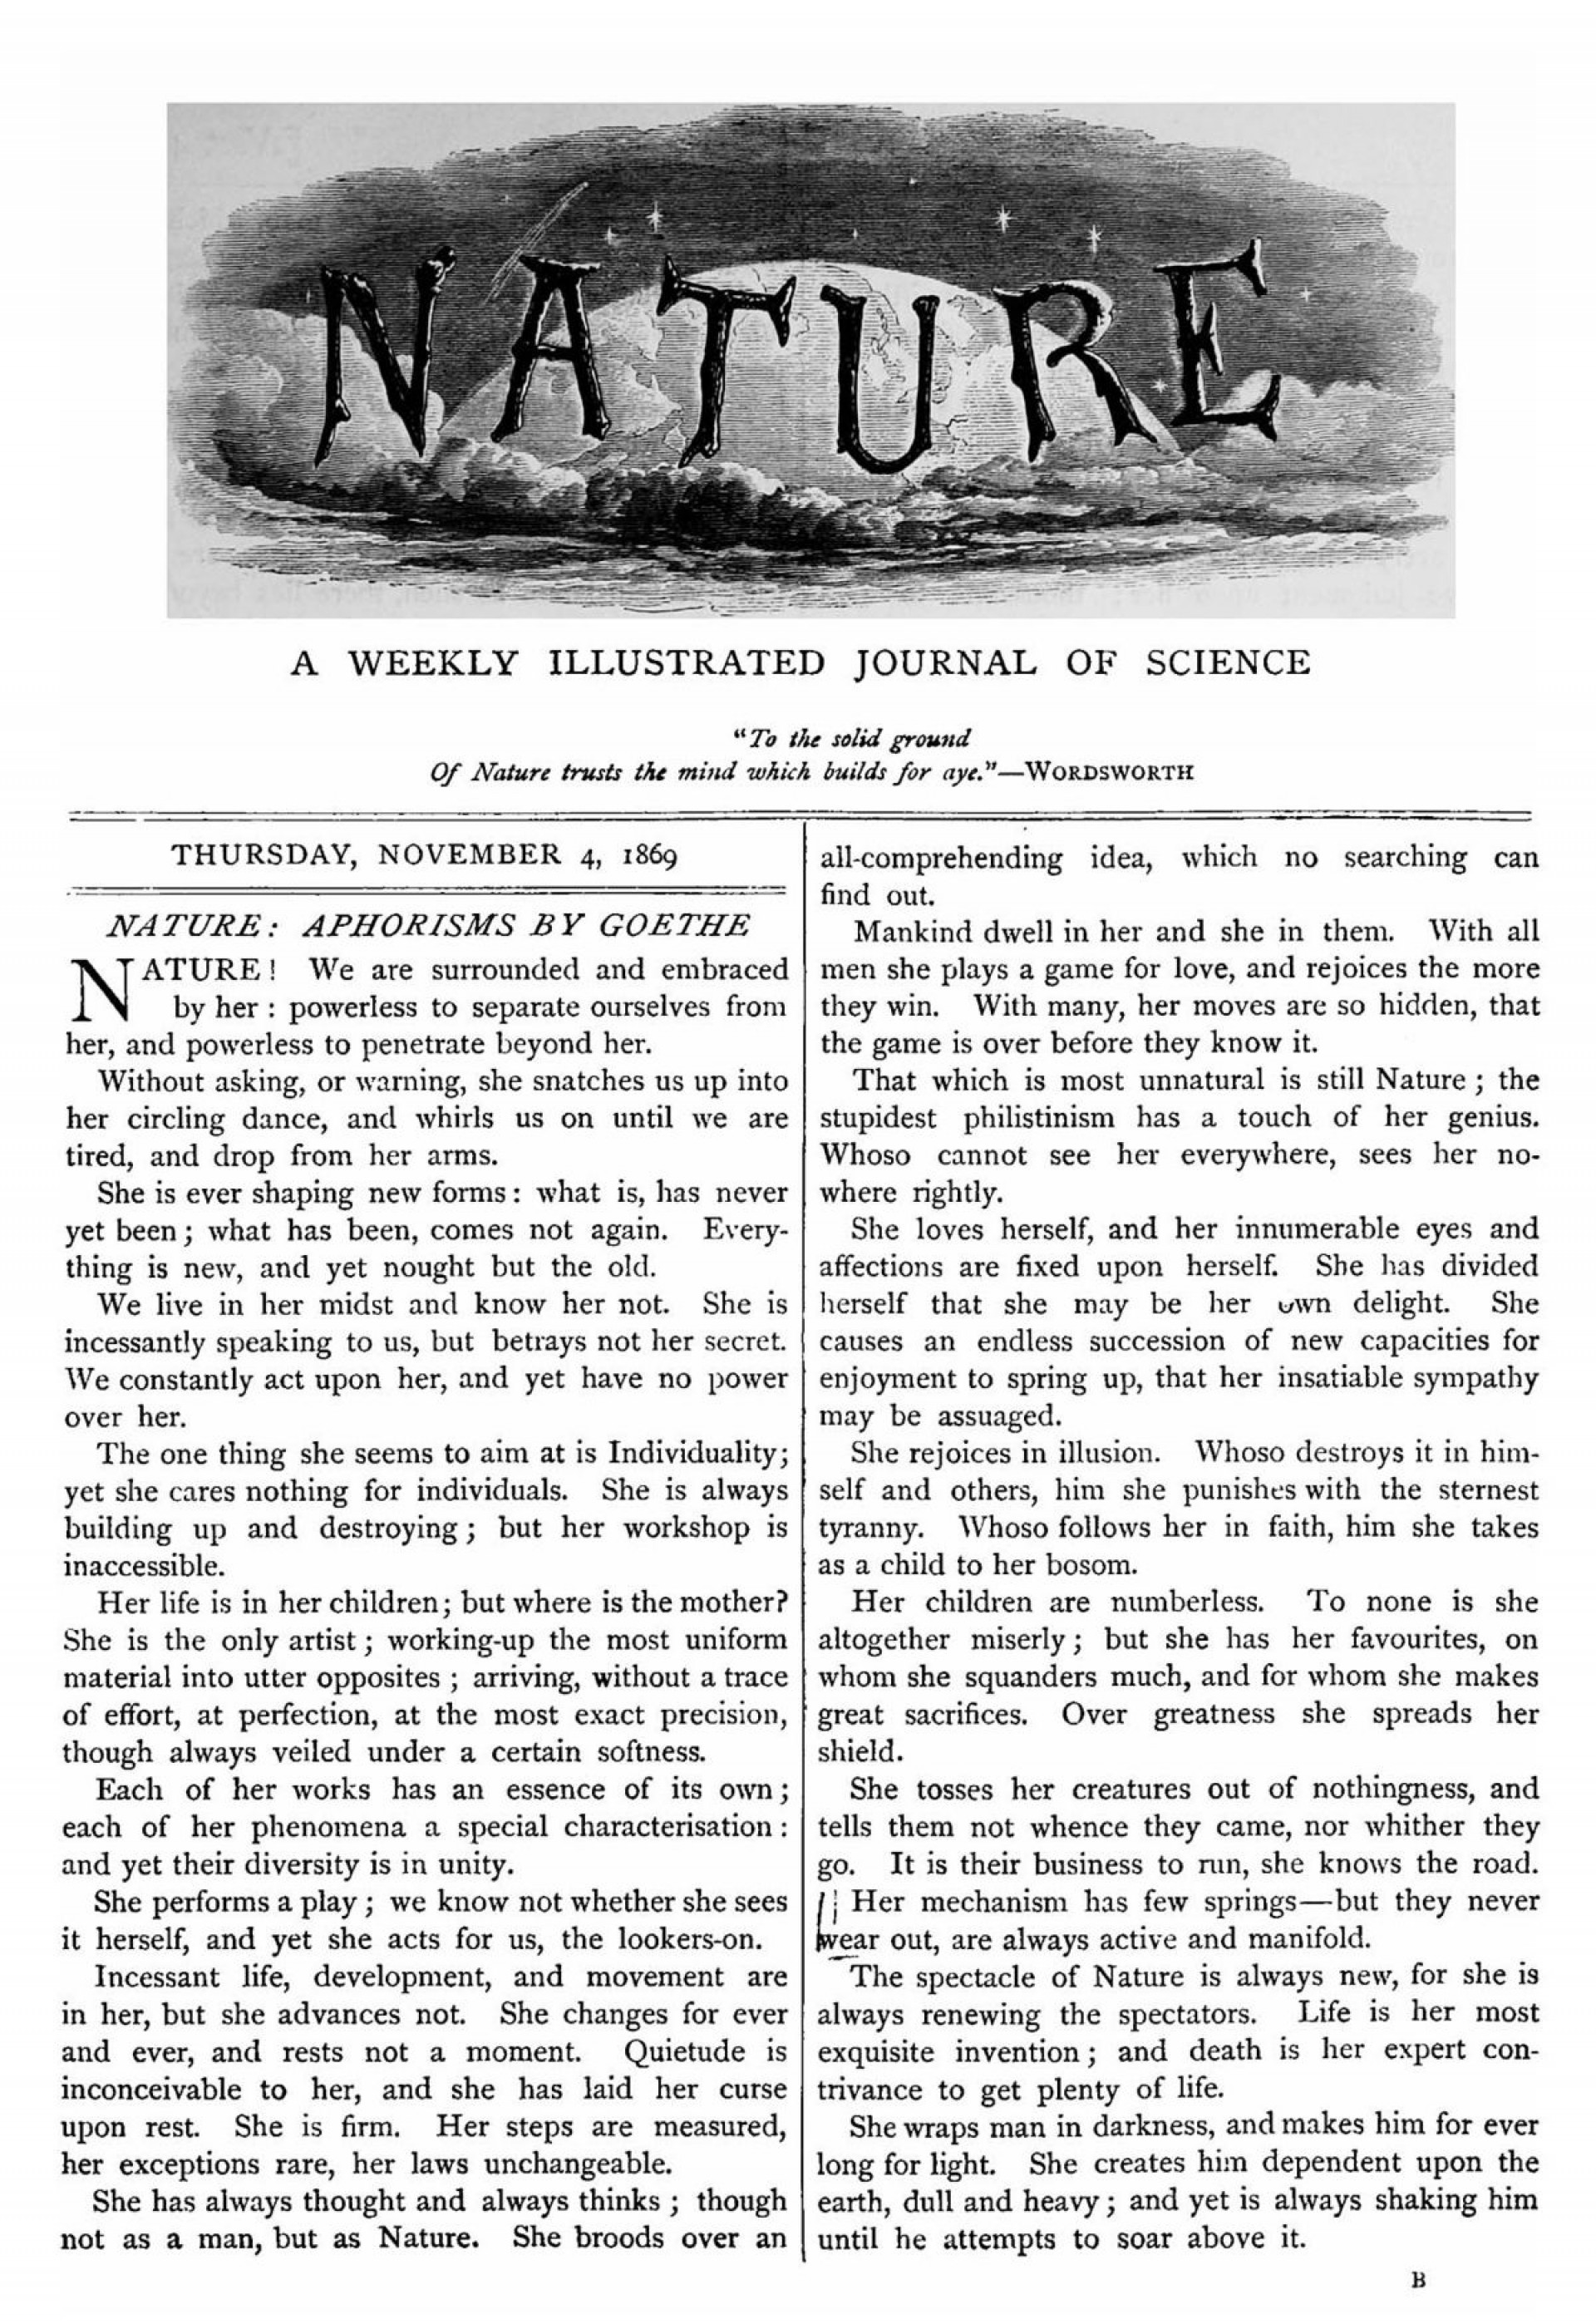 010 Computer Science Researchs Pdf Free Download 1200px Nature Cover2c November 42c 1869 Remarkable Research Papers 1920